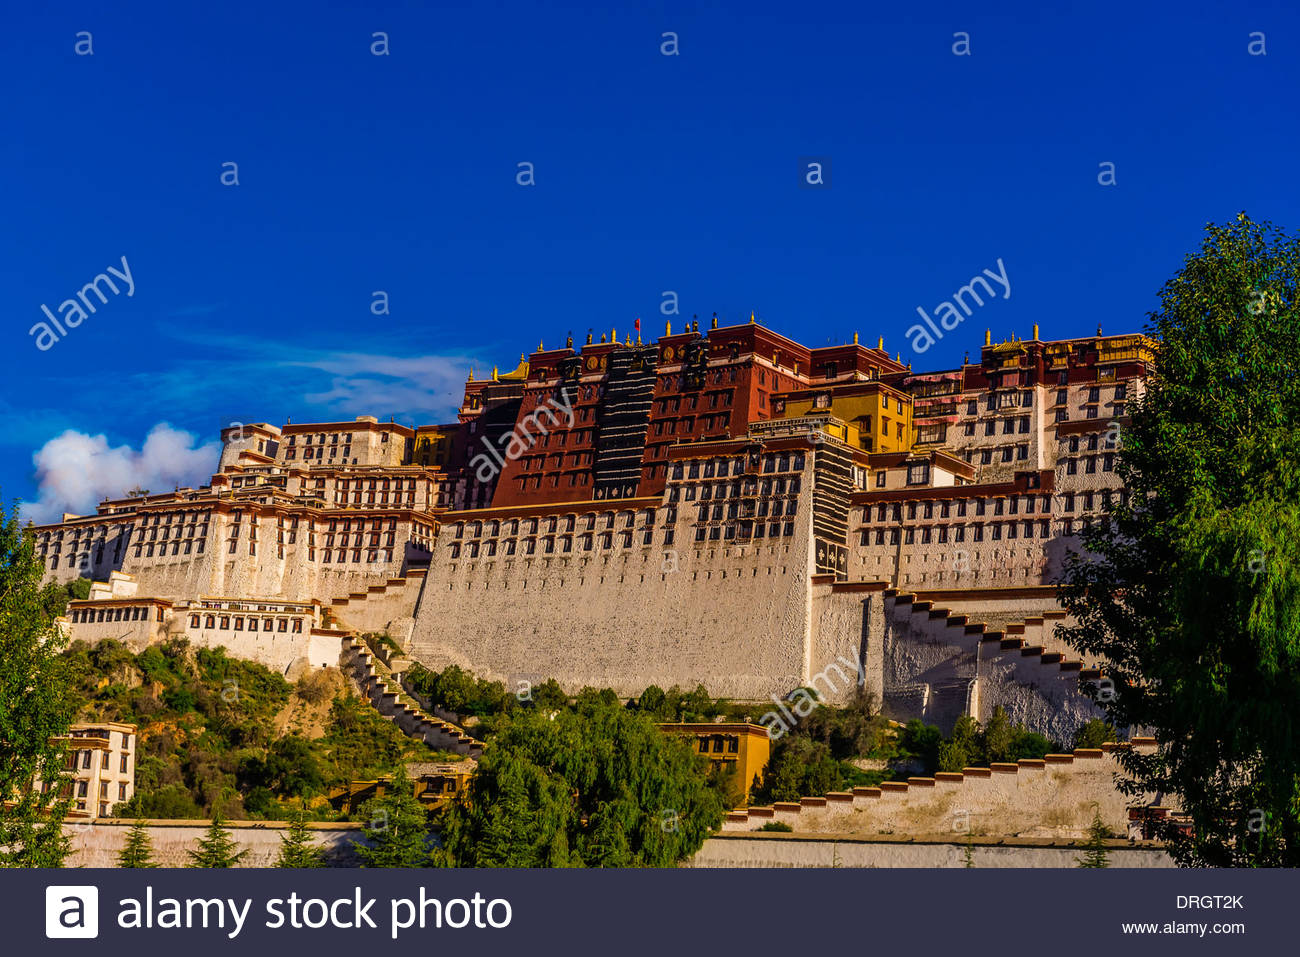 The Potala Palace (a UNESCO World Heritage Site) was the chief residence of the Dalai Lama until the 14th Dalai Lama fled to Dharamsala, India, during the 1959 Tibetan uprising. The massive palace contains 999 rooms. Lhasa, Tibet, China. - Stock Image